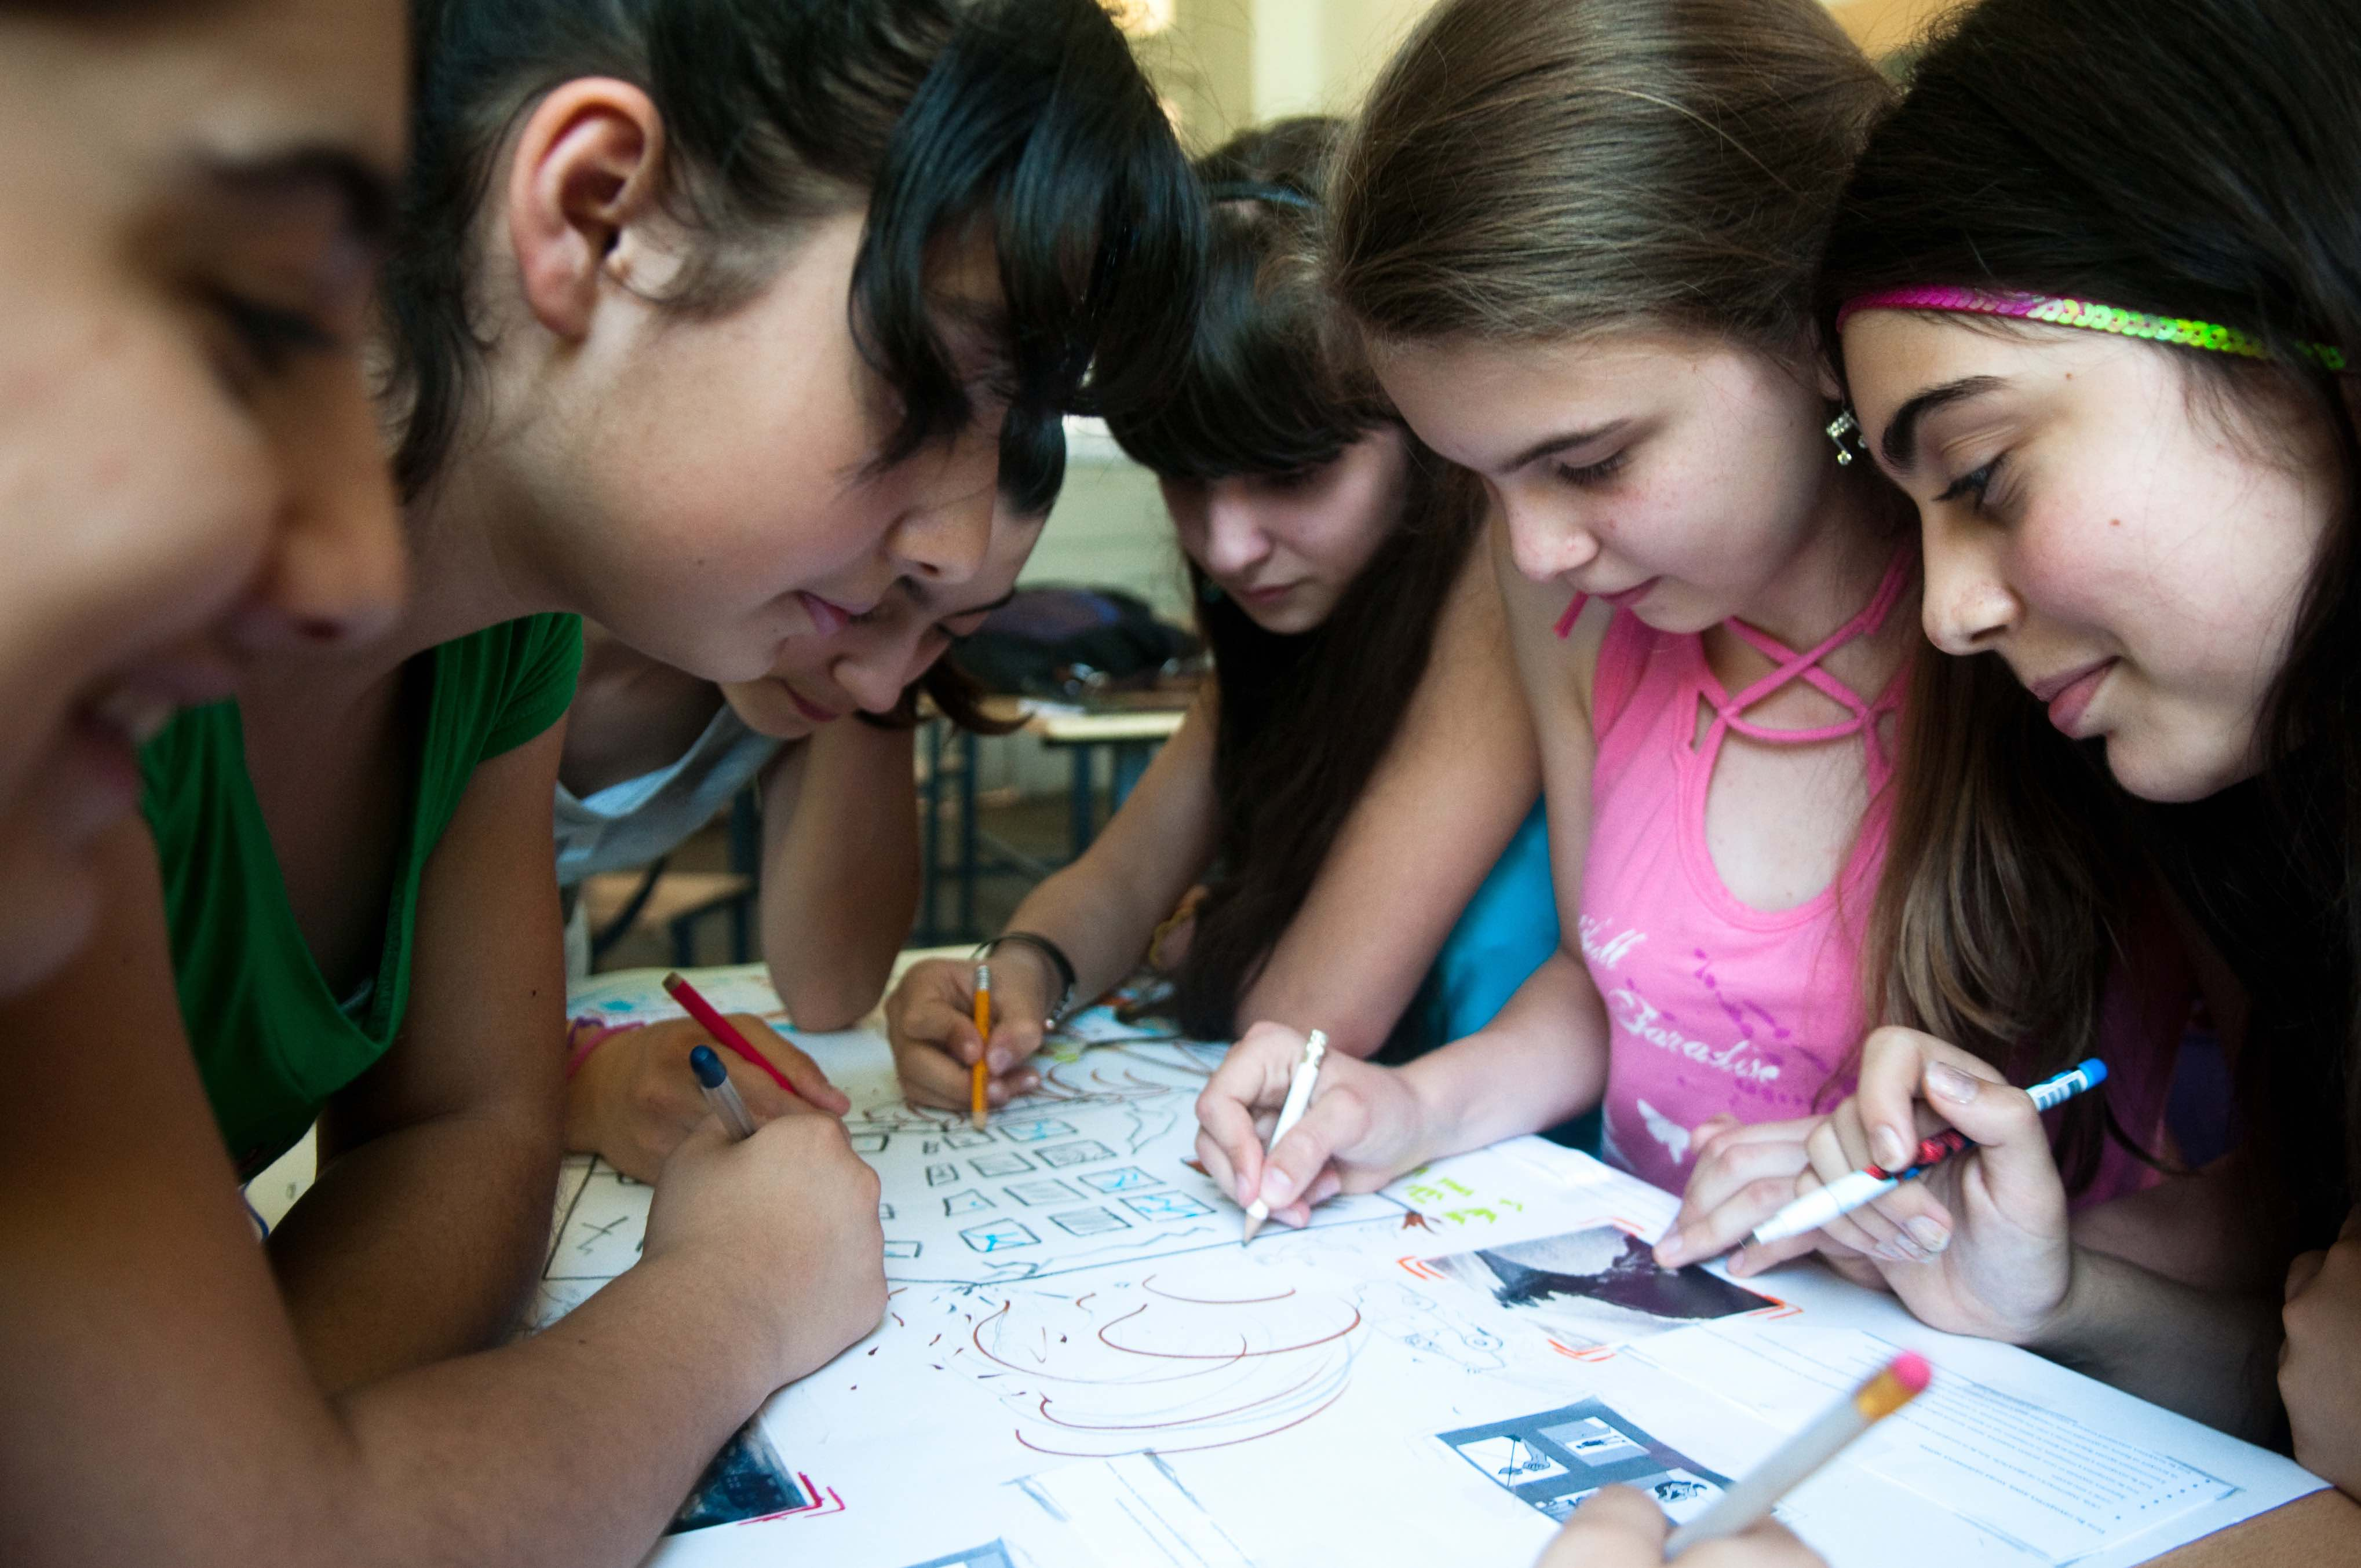 Girls working on a poster together.